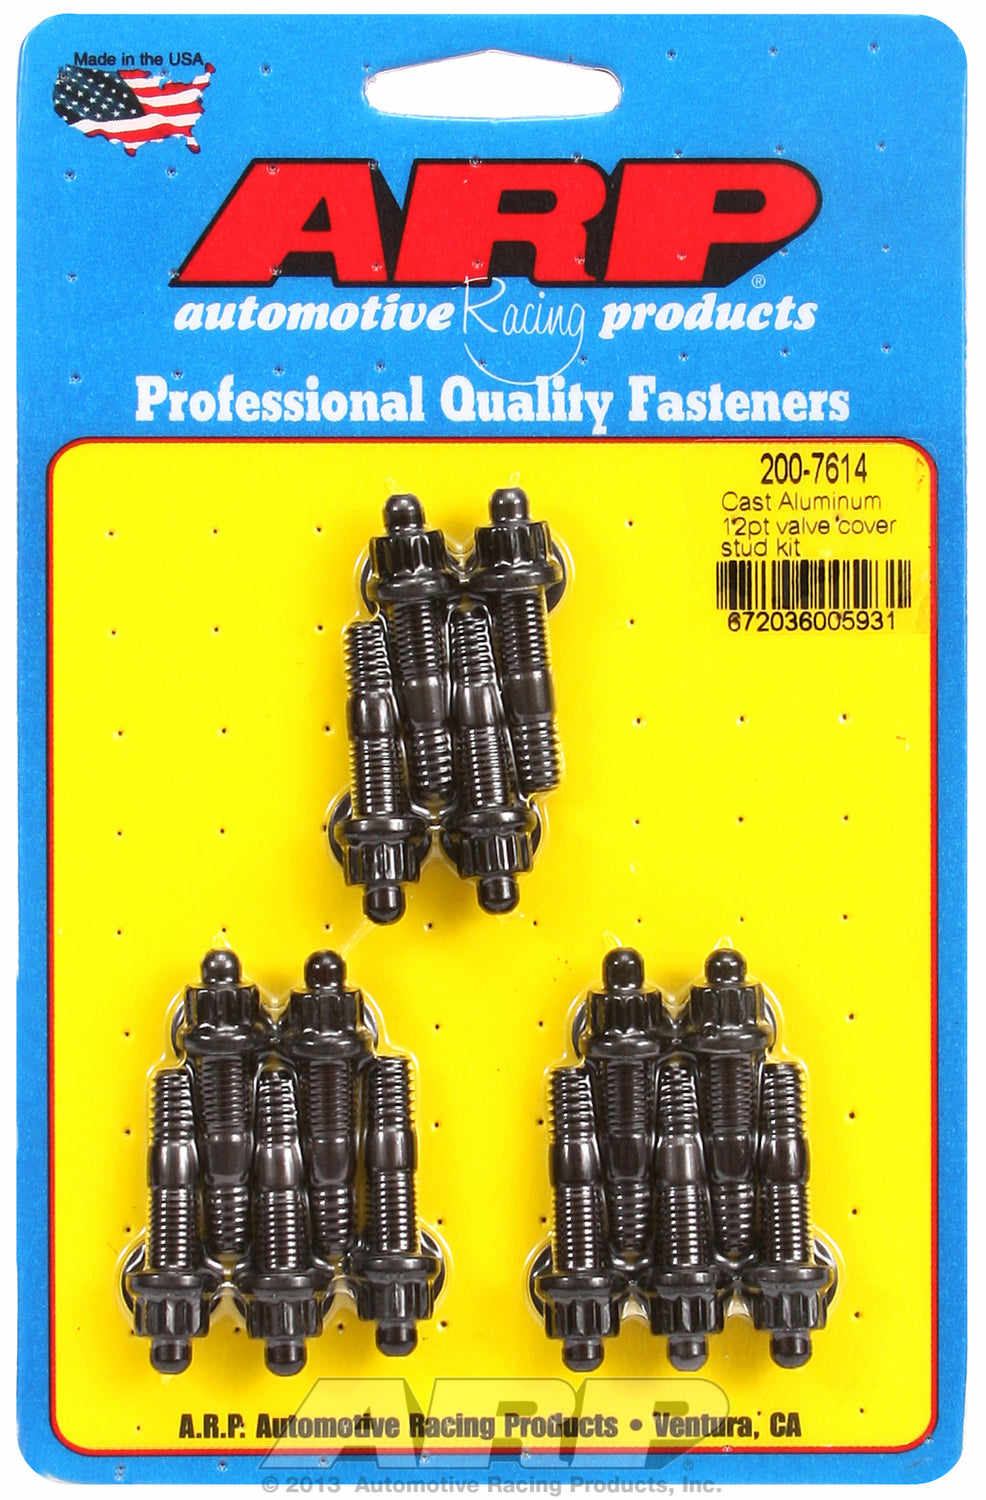 Valve Cover Stud Kit for Cast Aluminum Covers Stud kit Black Oxide - 12-Pt Head